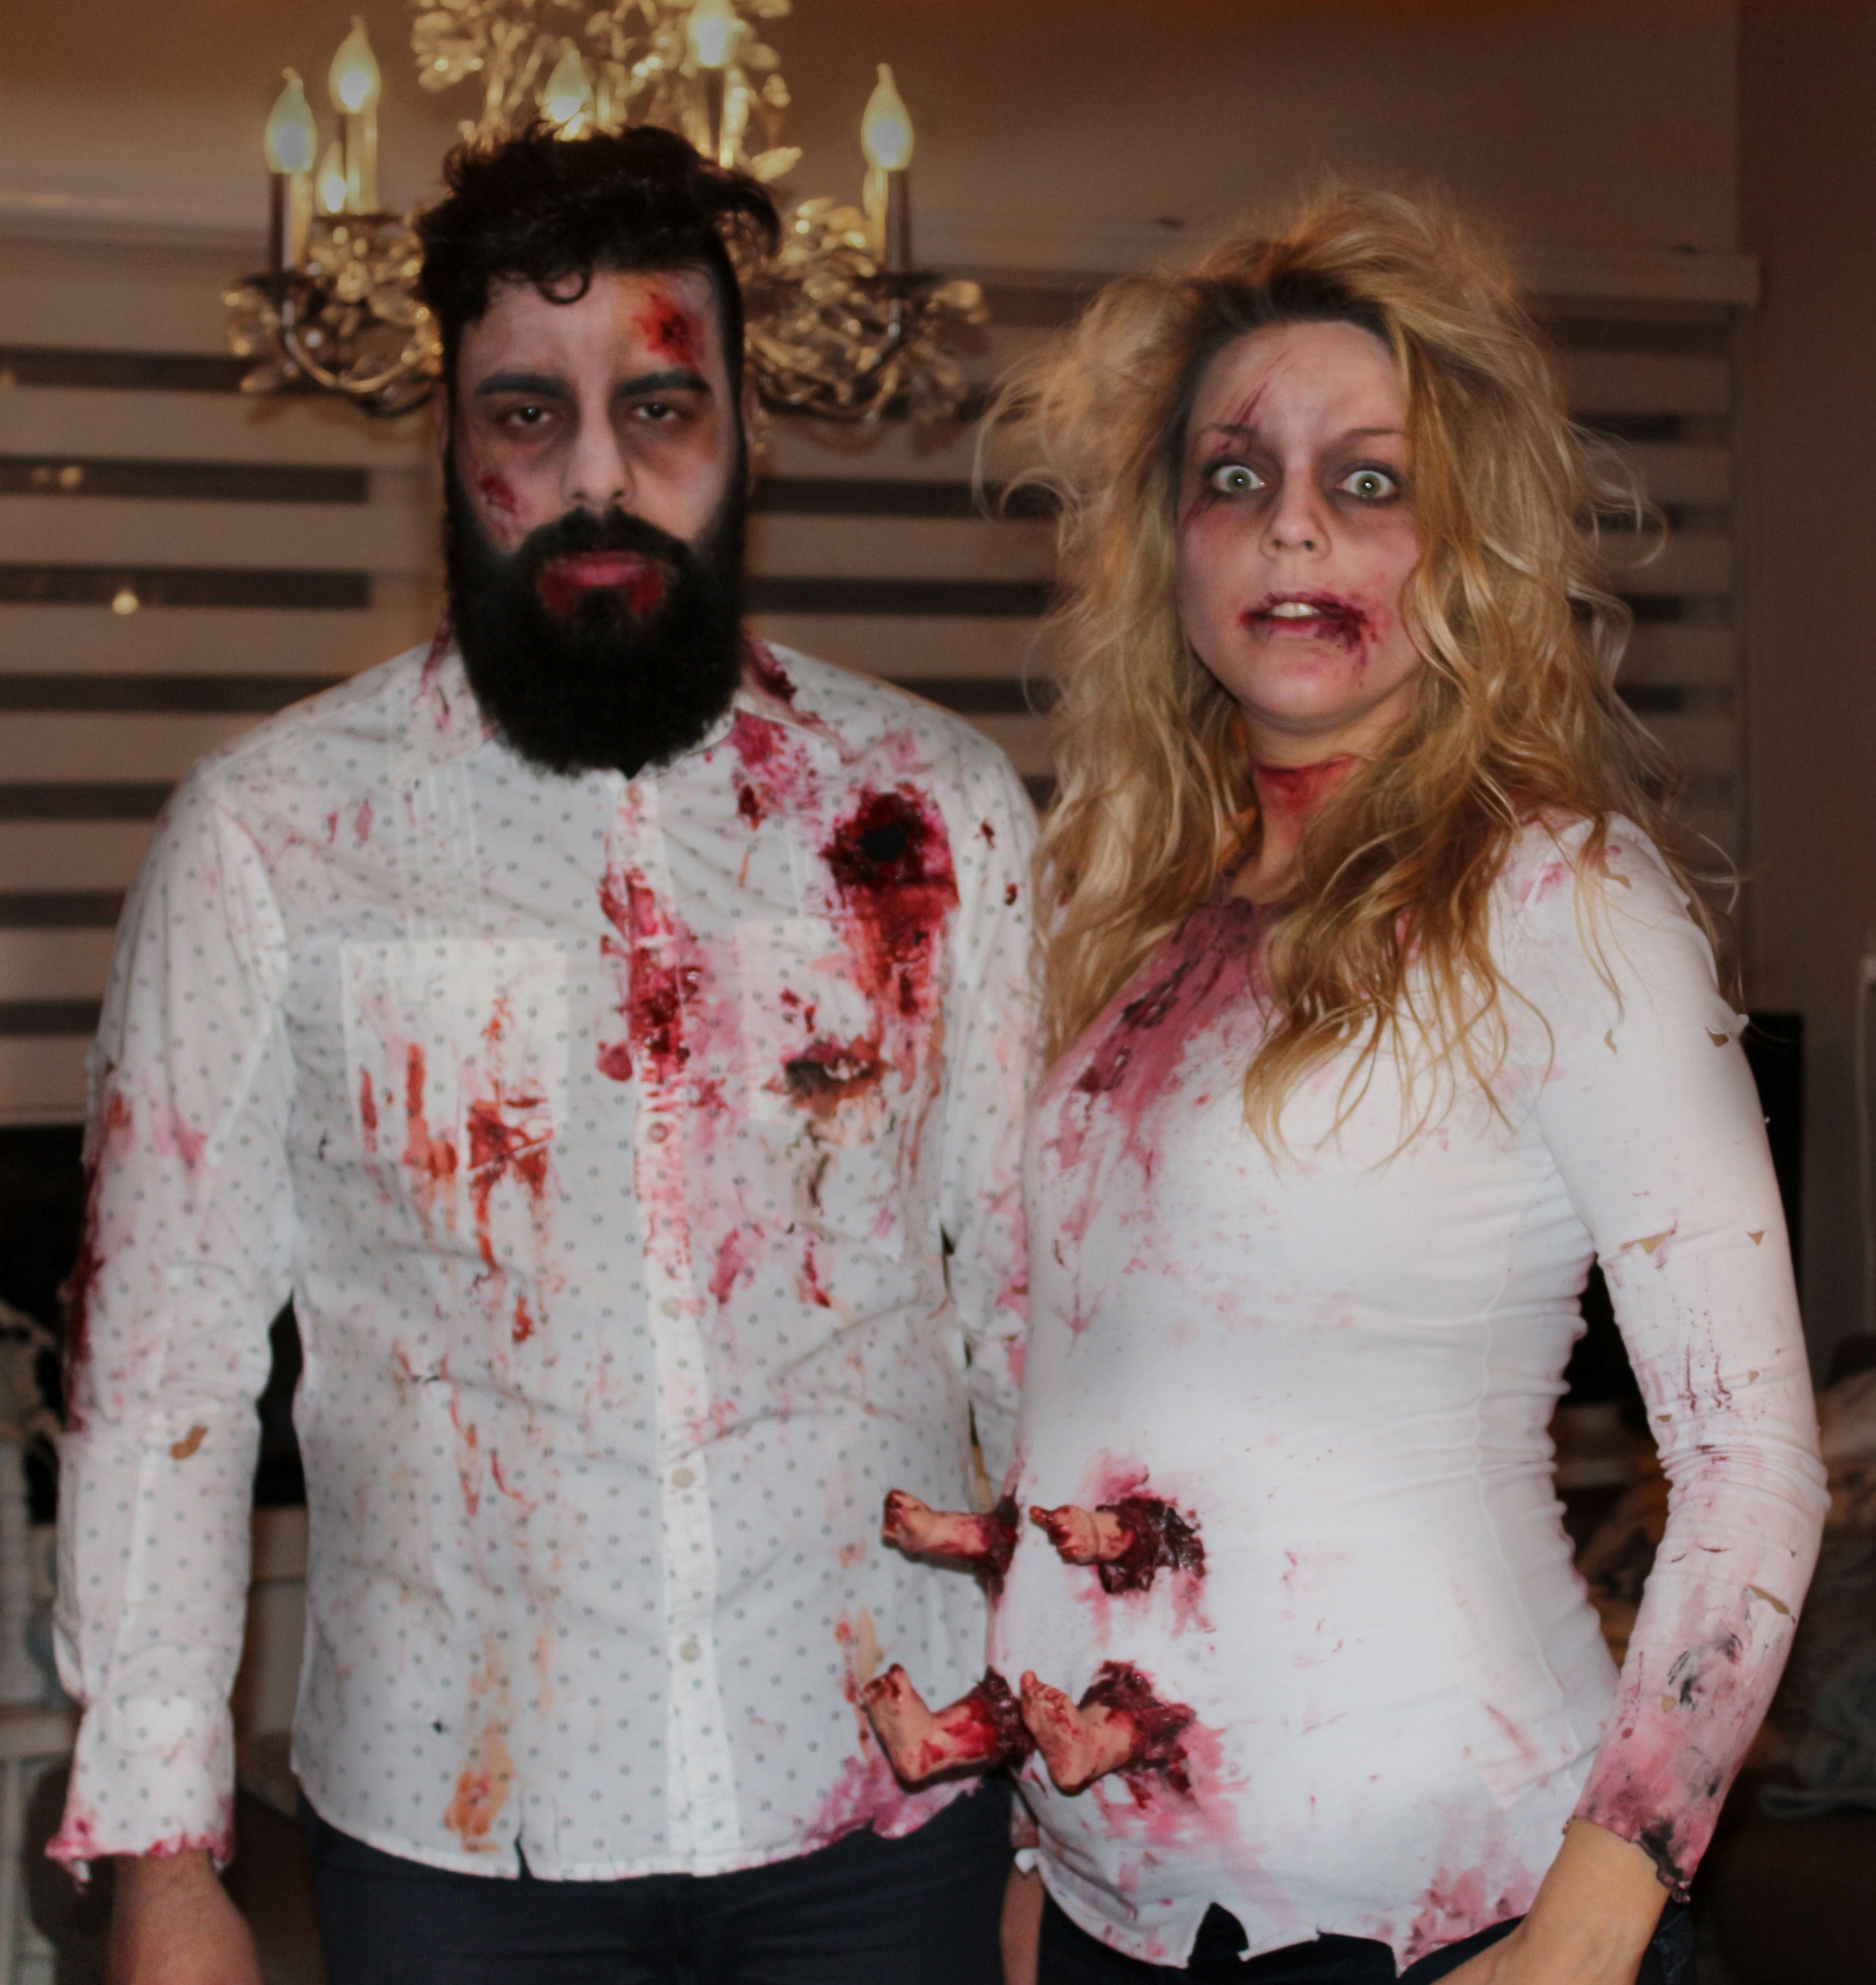 Coolest Halloween costume ever! All you gotta do is cut up a baby ...